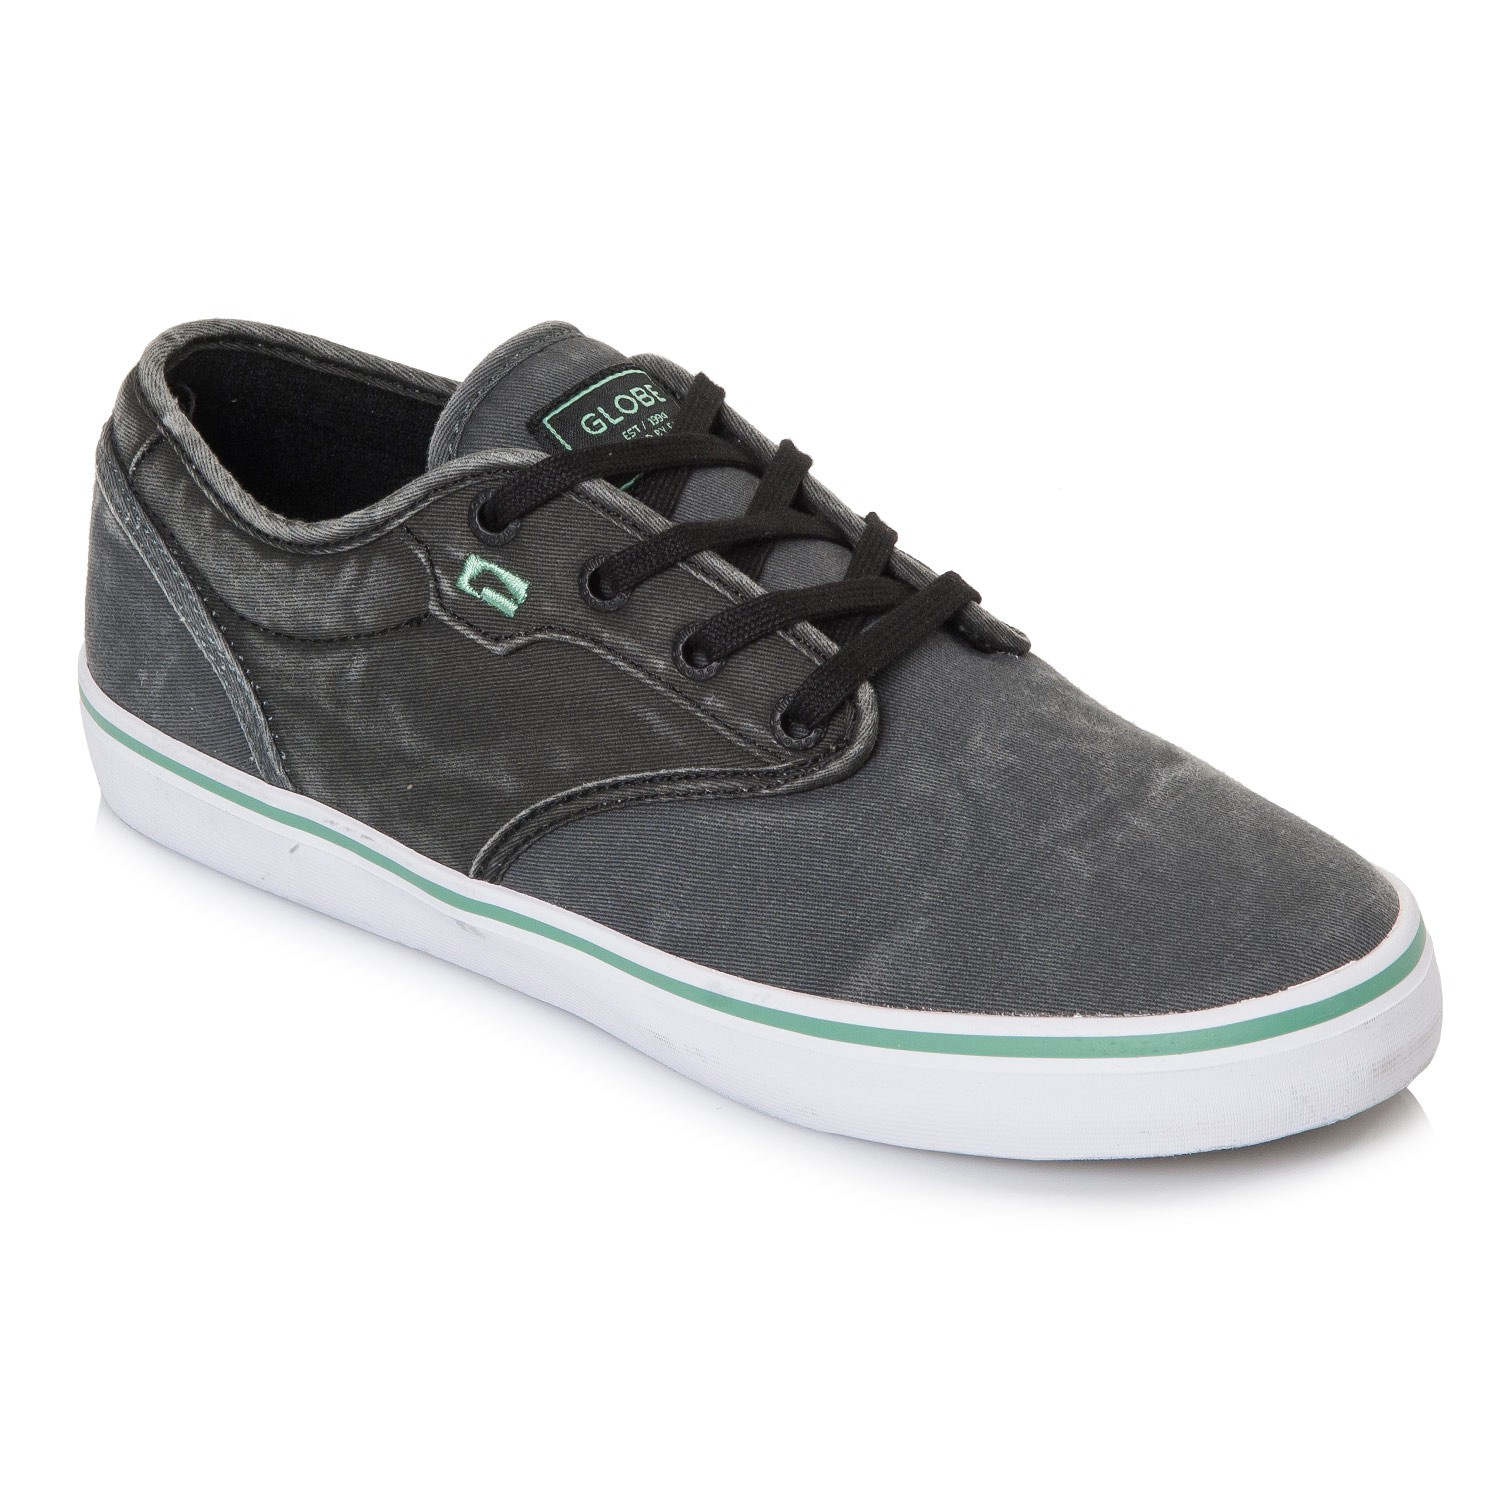 Tenisky Globe Motley dark shadow/black wash